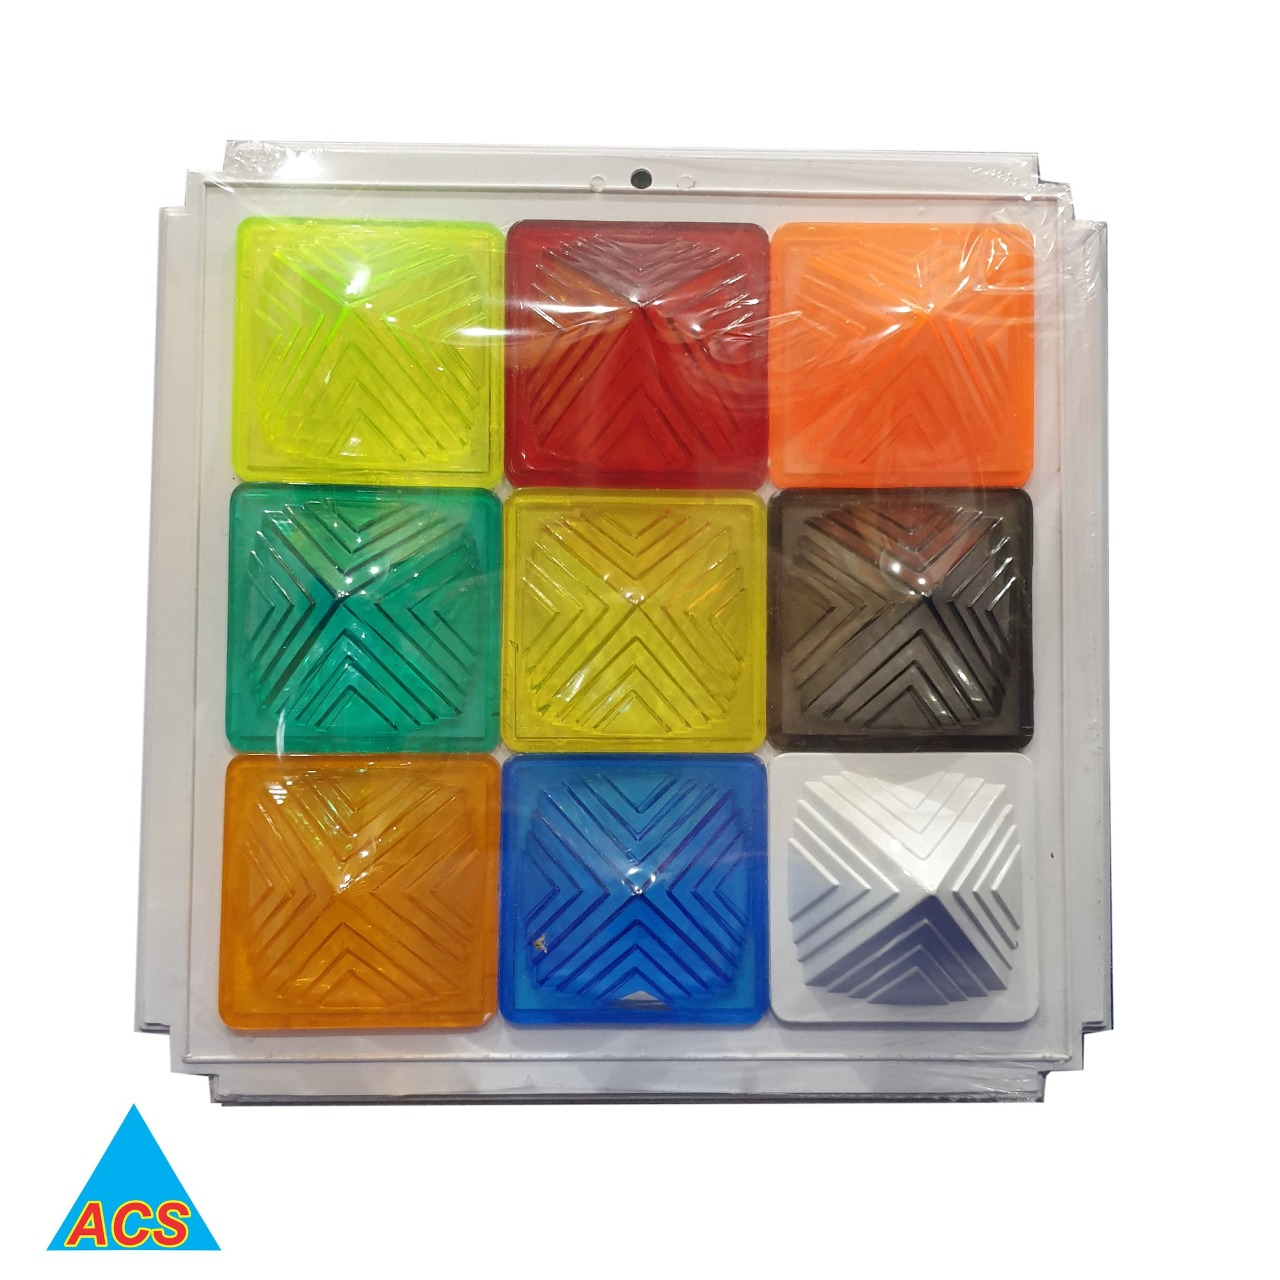 ACS Pyramid Navgrah Set - III Square Plate  - 720